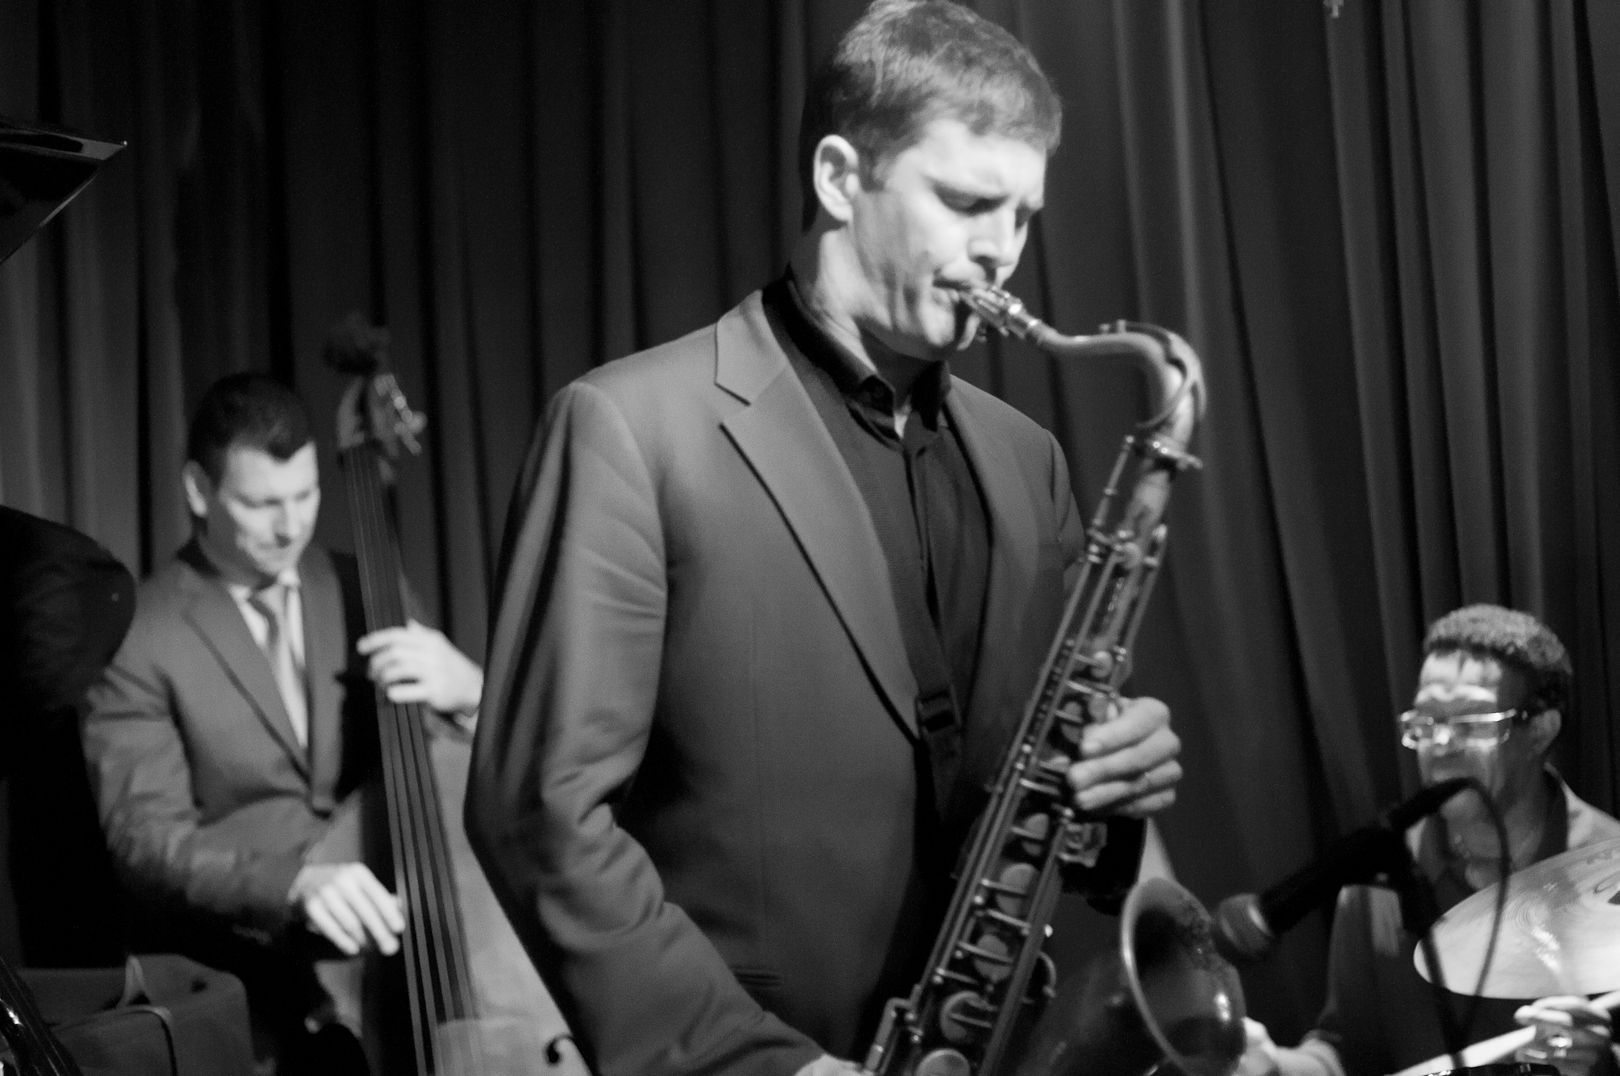 John Weber, Eric Alexander and Louis Hayes with the Alexander & Mabern Quartet Play the Music of John Coltrane at Smoke Jazz Club